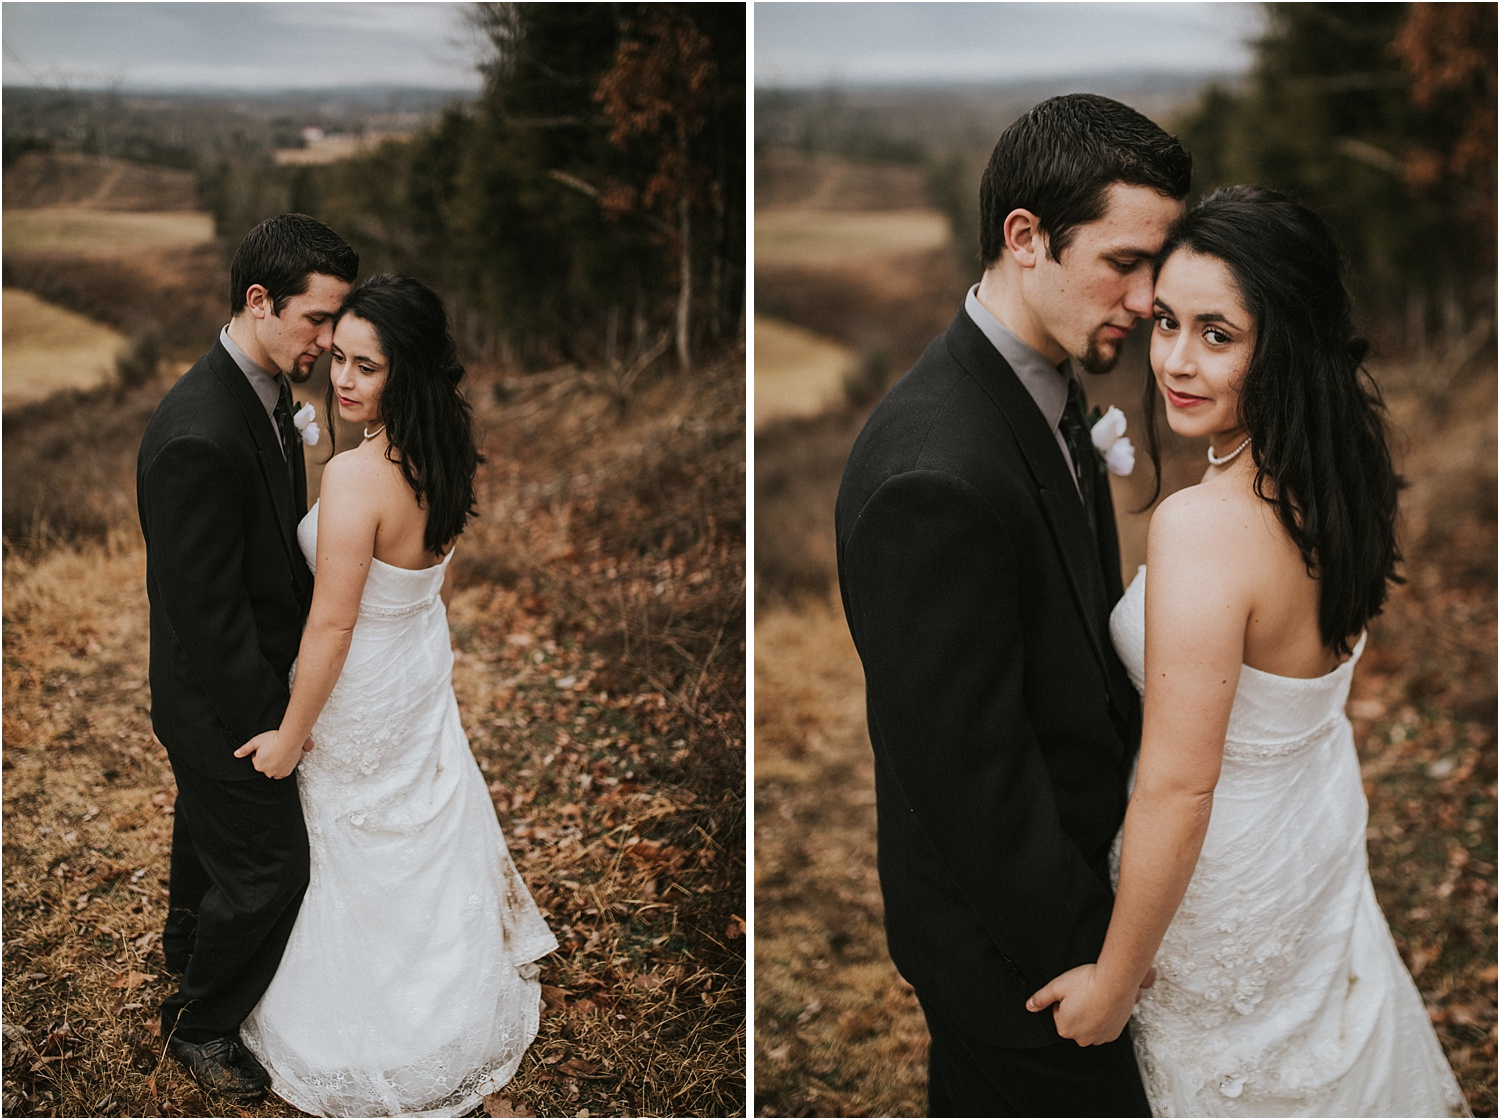 lovestoriesco-asheville-elopement-photographers_0031.jpg